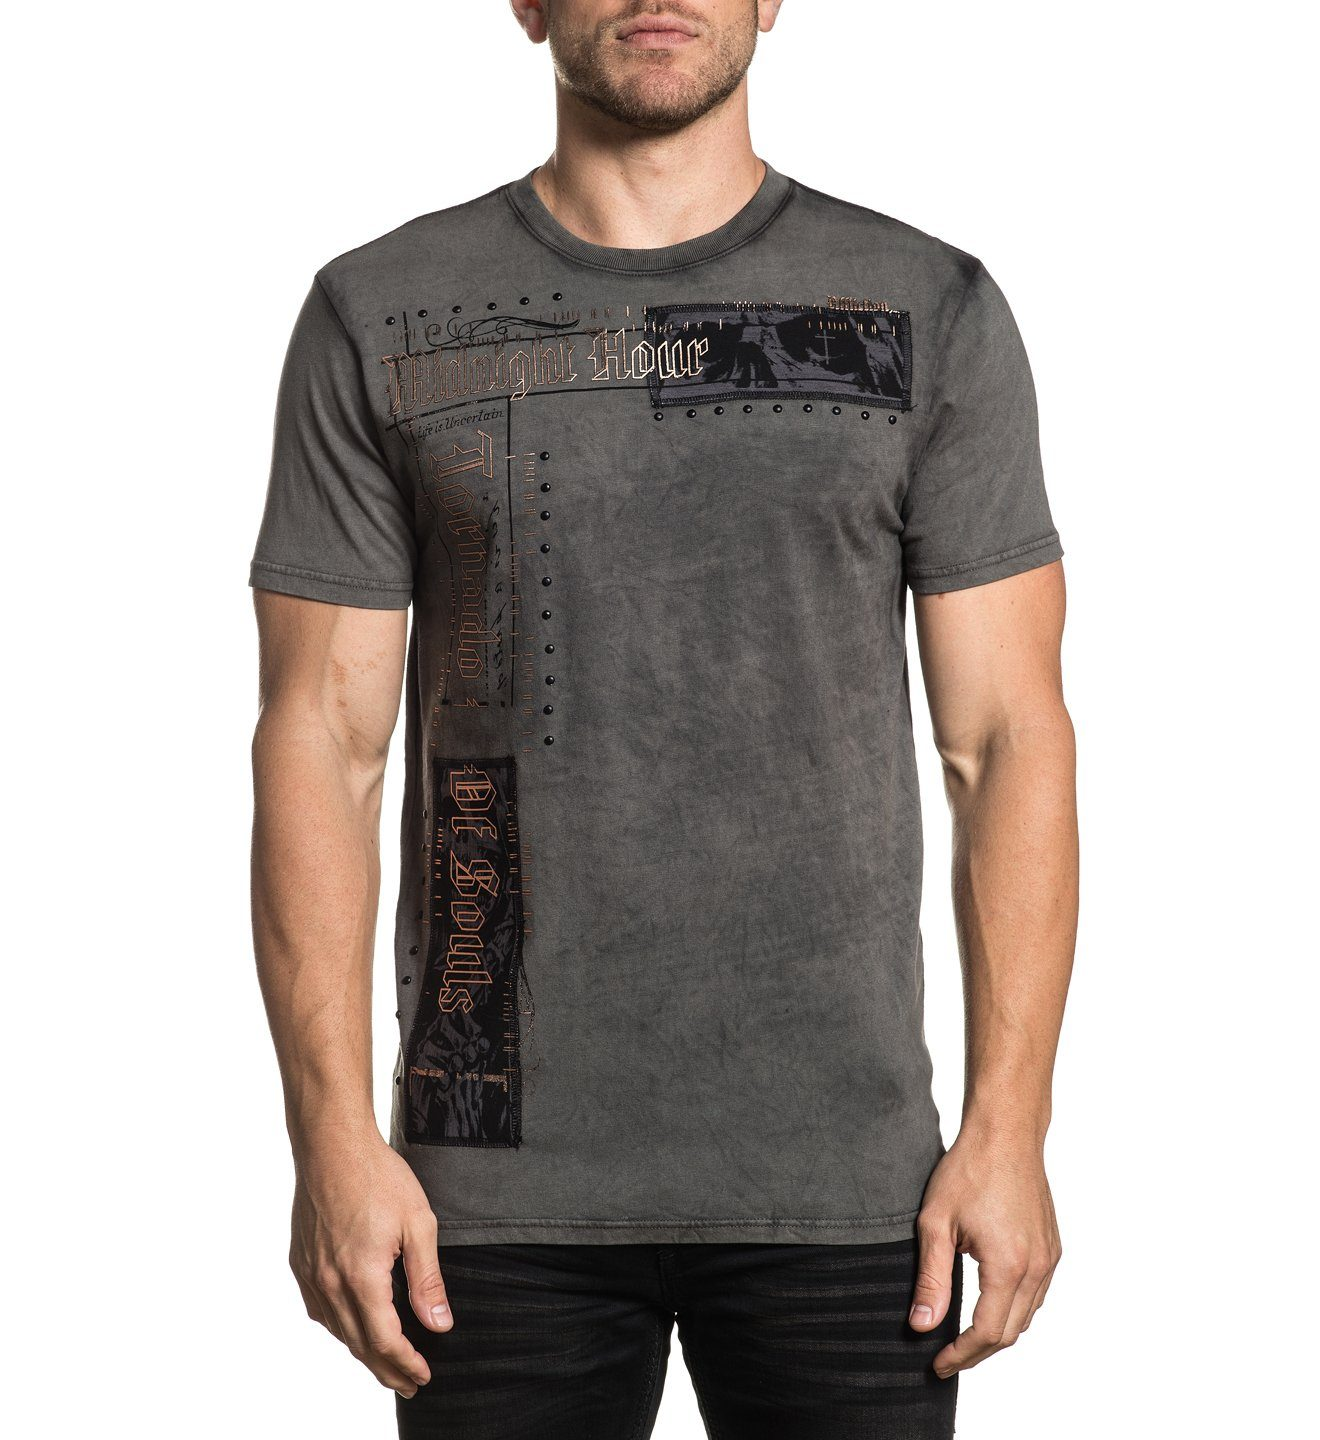 Tornado - Mens Short Sleeve Tees - Affliction Clothing